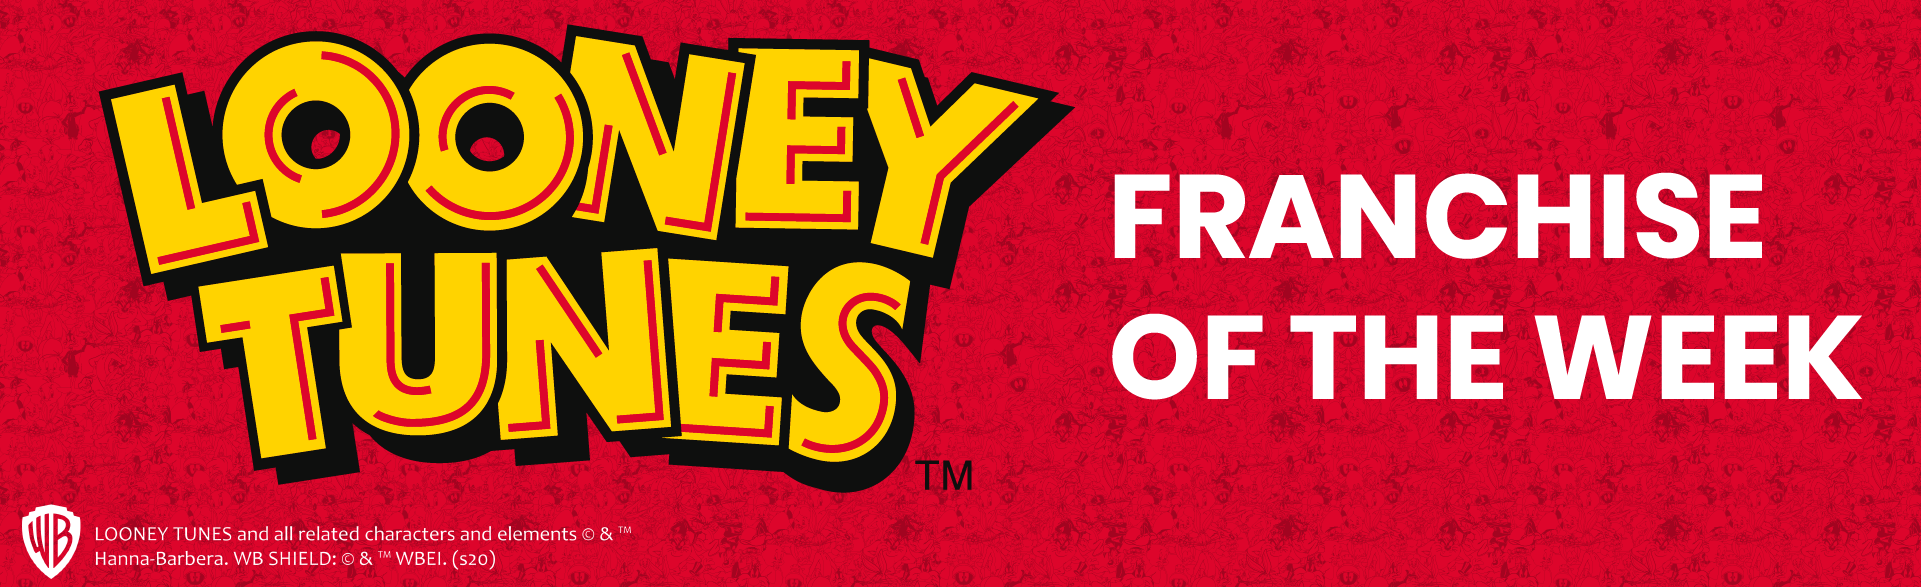 Looney Tunes Offers